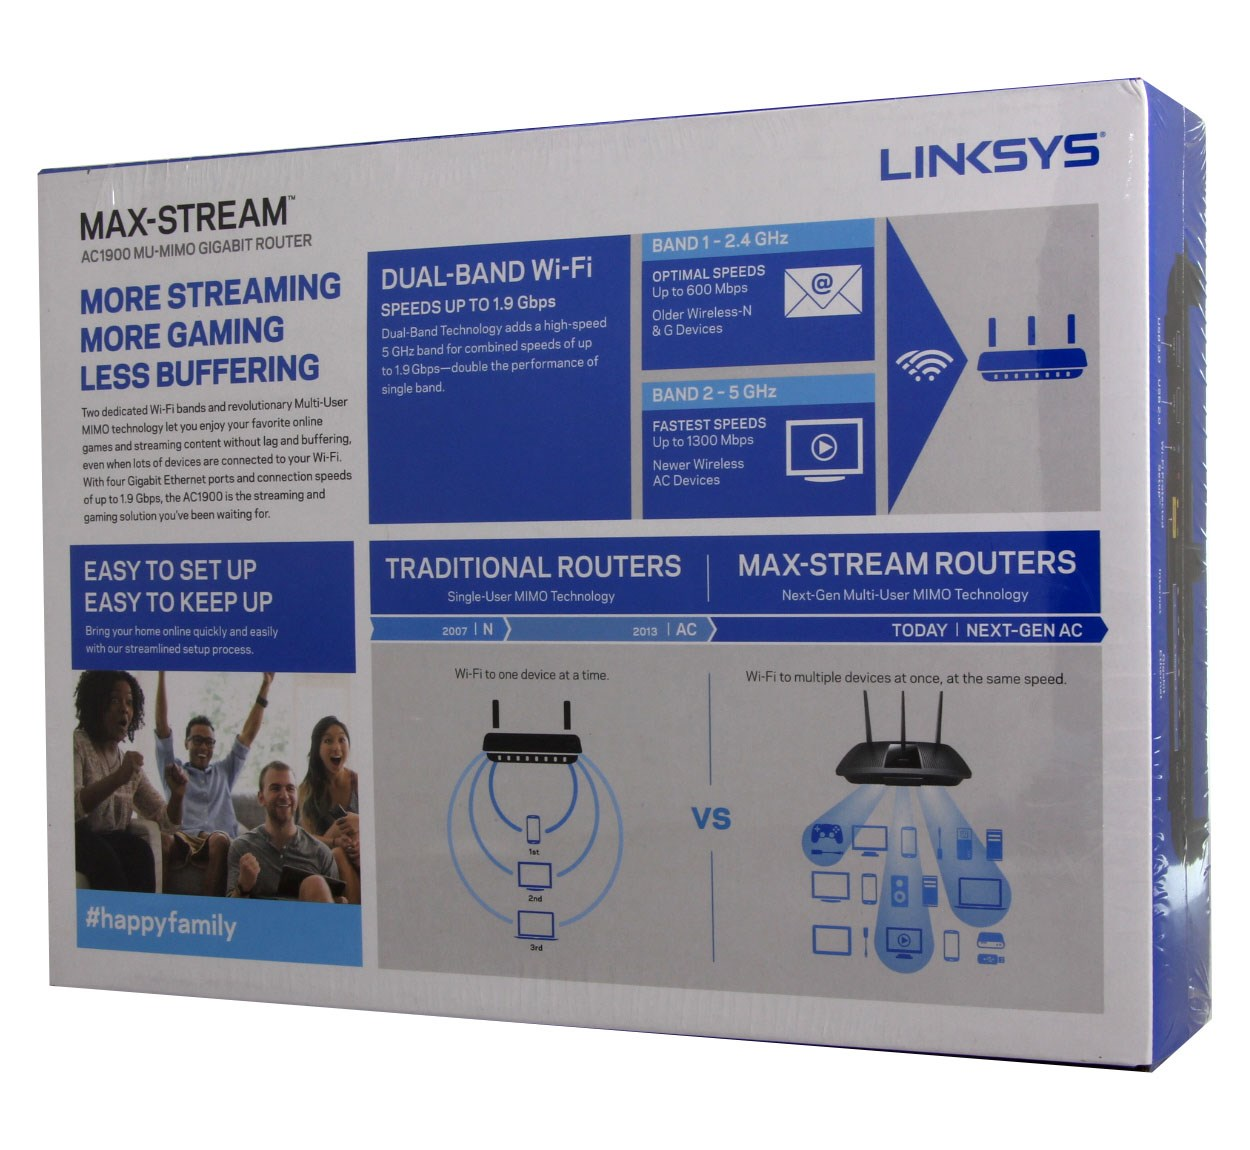 Linksys MAX-STREAM AC1900 Next Gen AC MU-MIMO Smart Wi-Fi Router (EA7500)